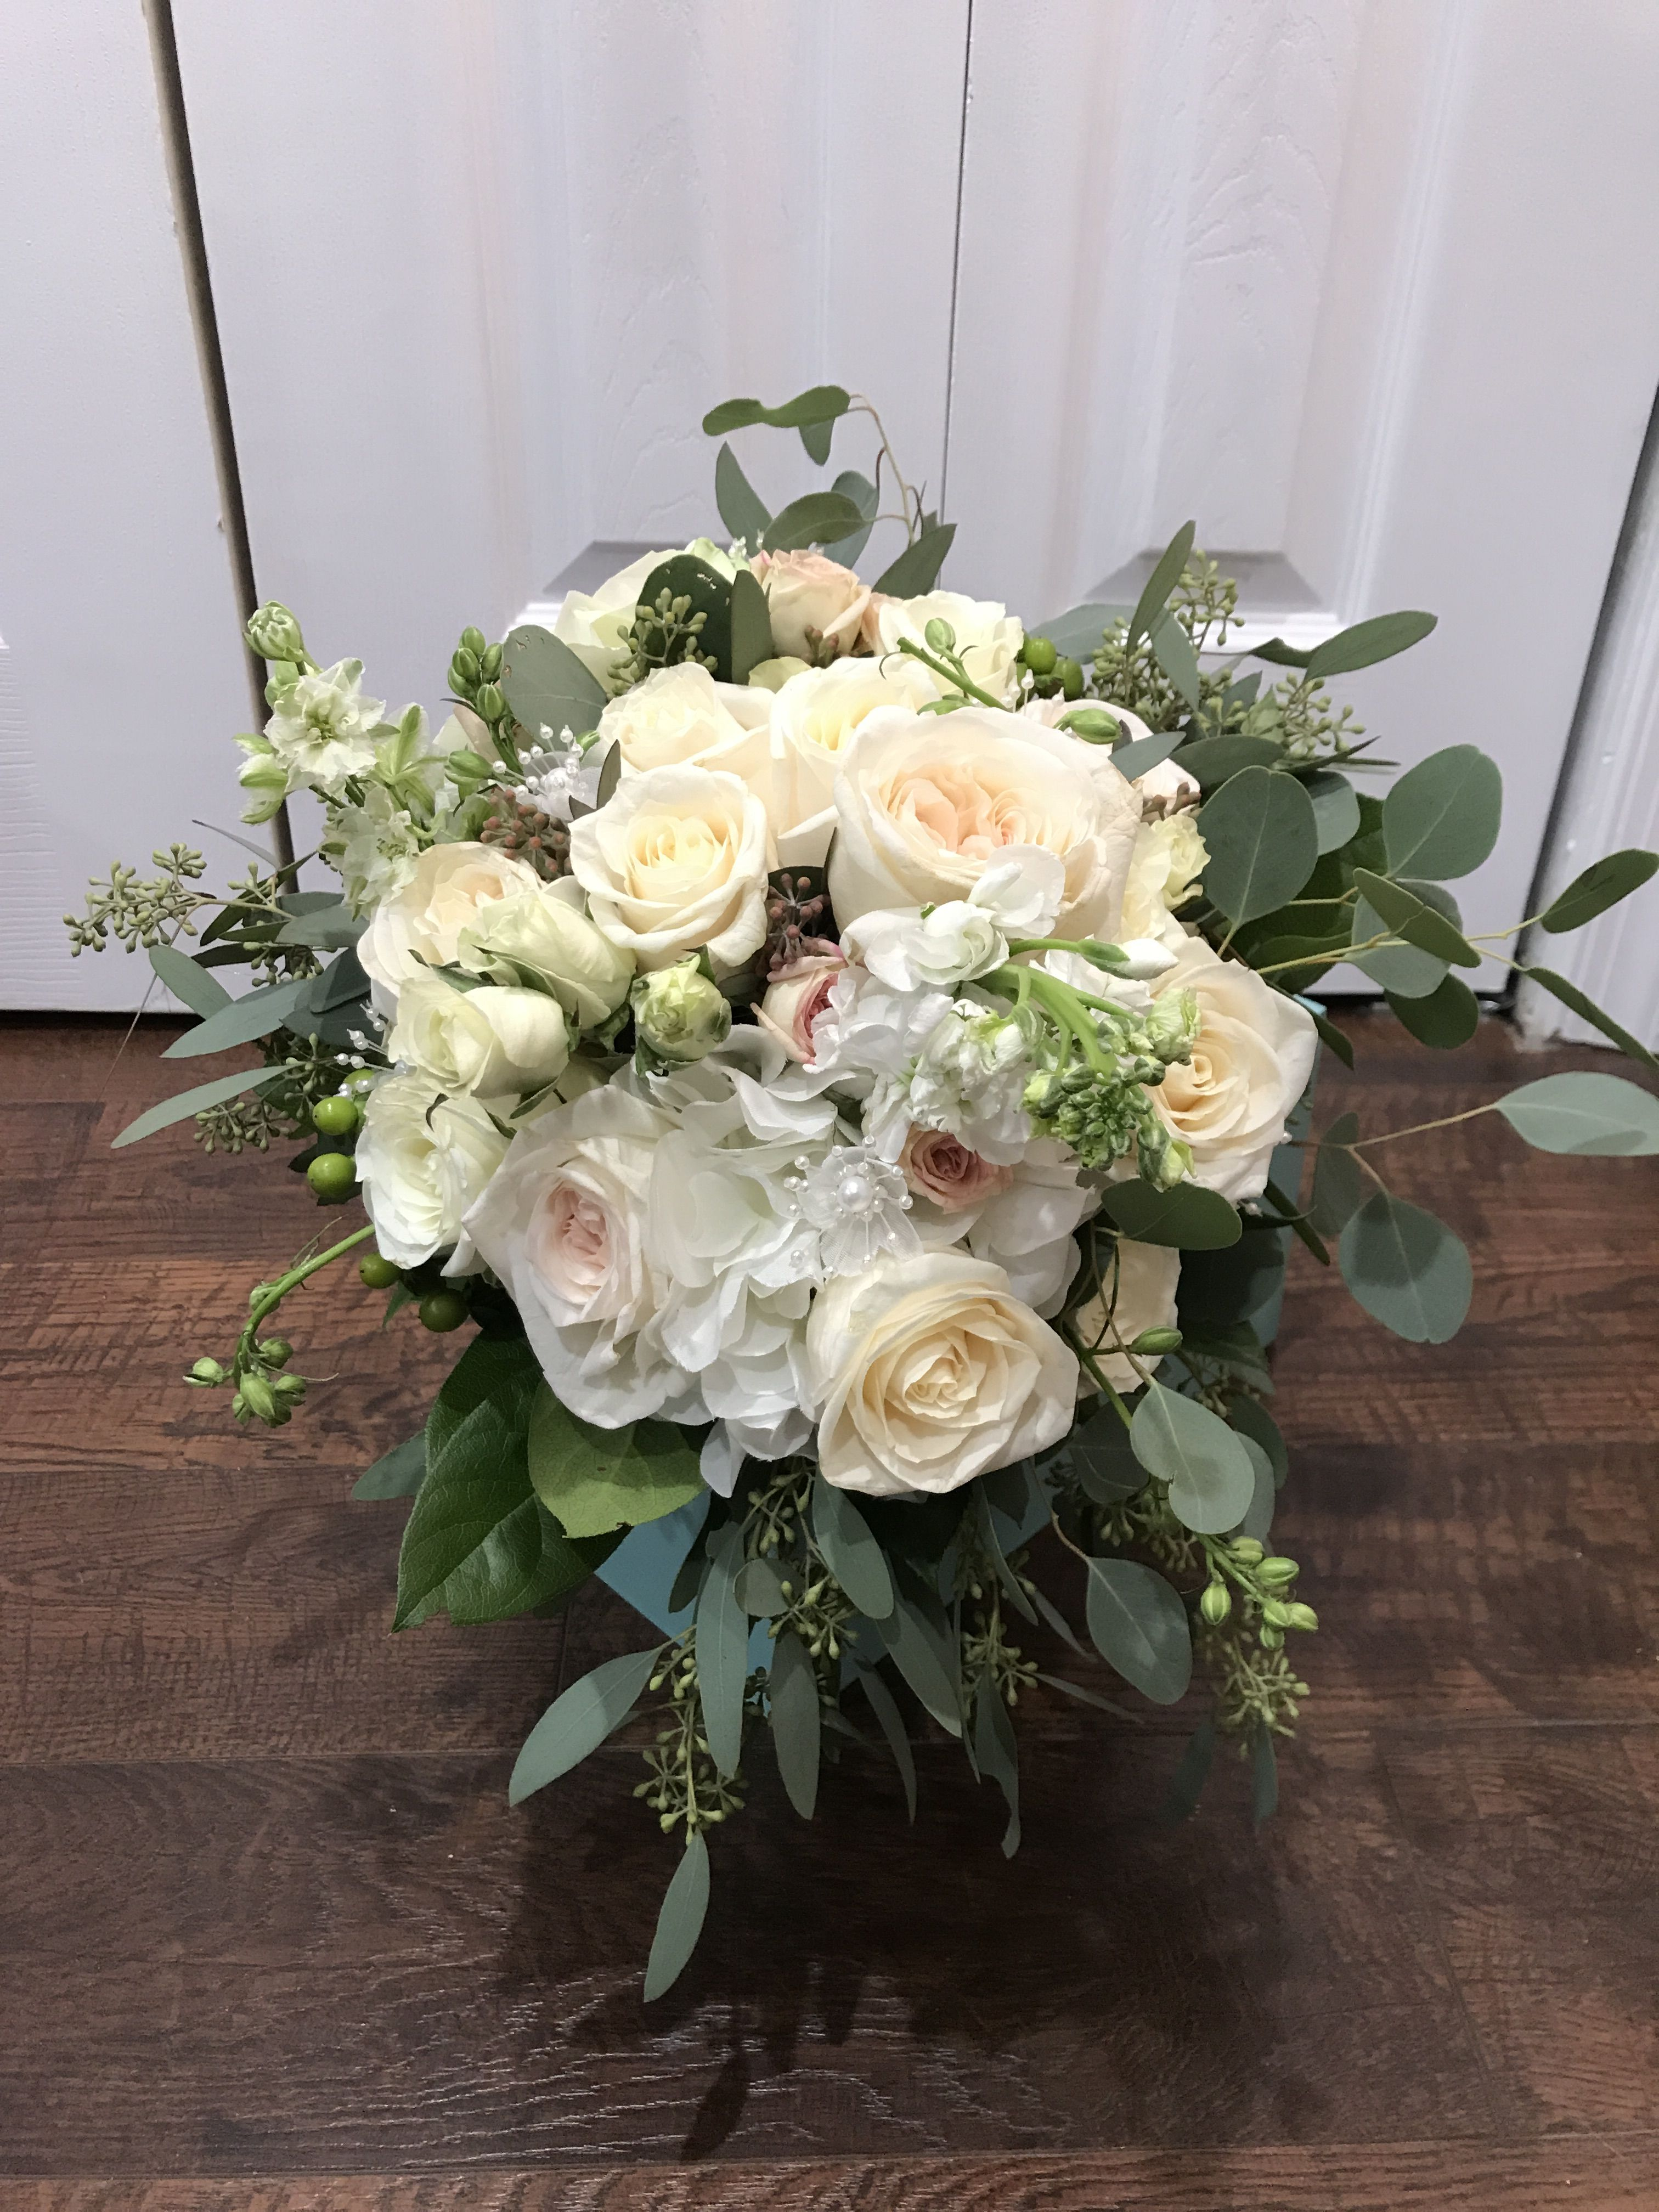 Bridal Bouquet Roses Hydrangea Blush Roses Willow Silver Dollar Seeded Eucalyptus Snapdragon Rose Bridal Bouquet Bridal Bouquet Blush Roses